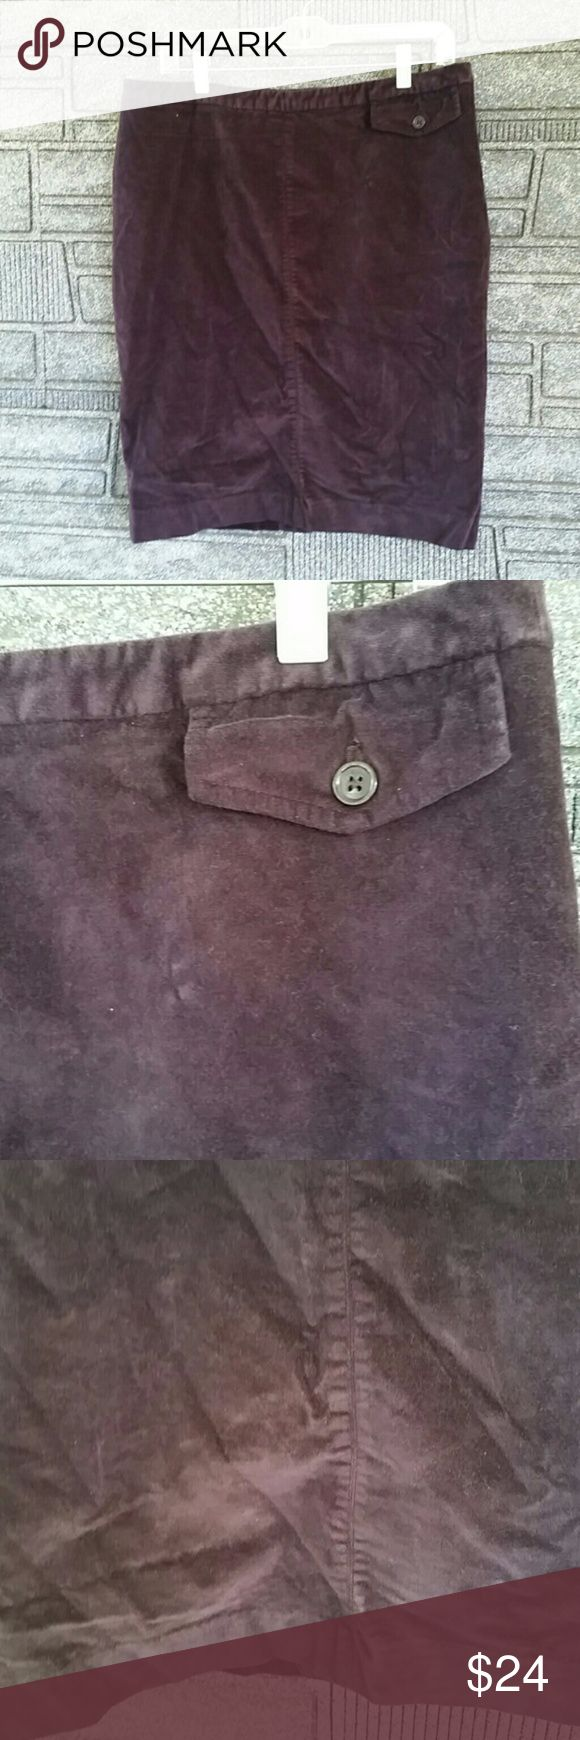 Gap crushed velvet purple pencil skirt 12 NWOT Gap crushed velvet purple pencil skirt 12 NWOT Skirt features a front fake pocket, rear slit and rear zipper and button closure. Darts in the back add shaping. Color is dark purple. Skirt is fully lined. Shell is 99% cotton, 1% spandex, lining is 100% polyester. Measures 22 inches long, 16.5 inches waist. GAP Skirts Pencil